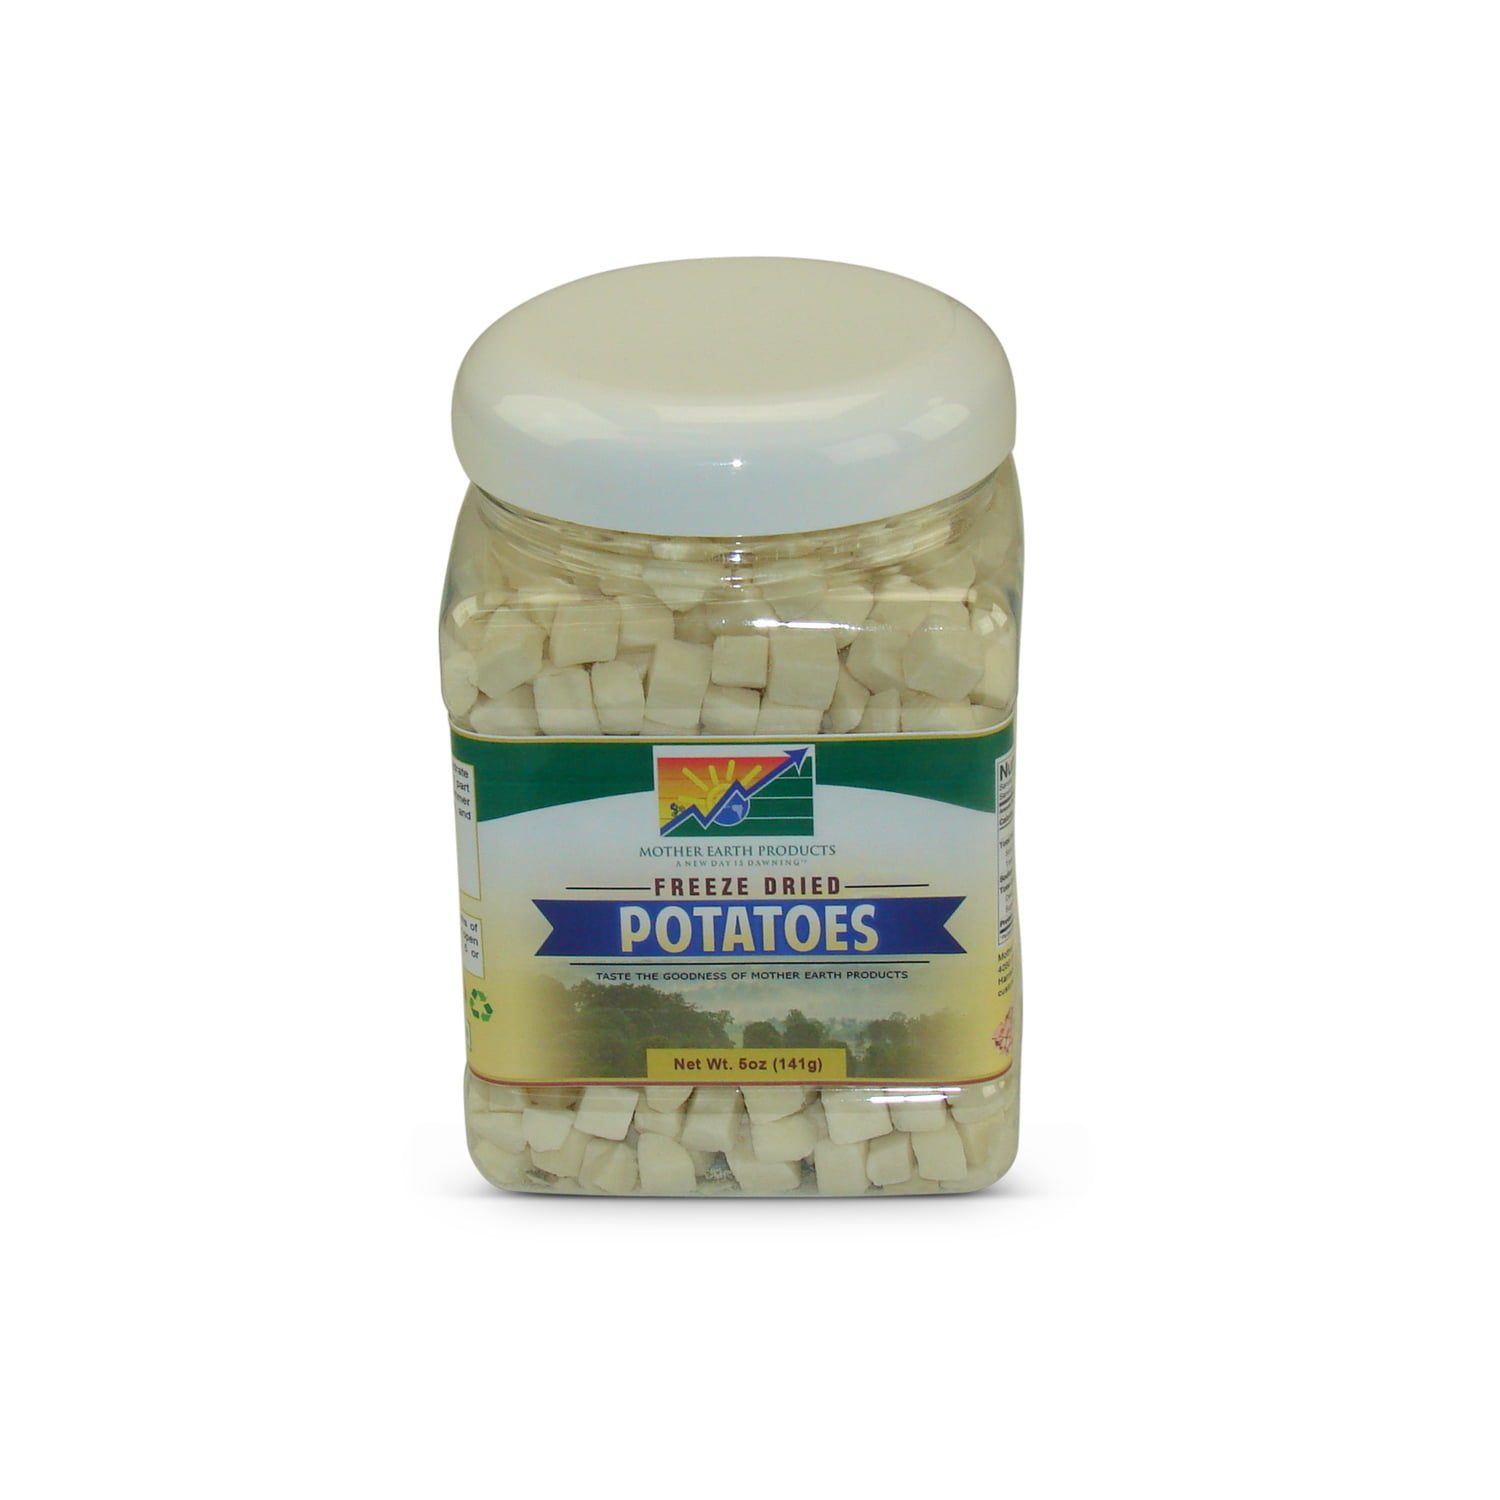 Mother Earth Products Freeze Dried Potato Dices, jar by Mother Earth Products